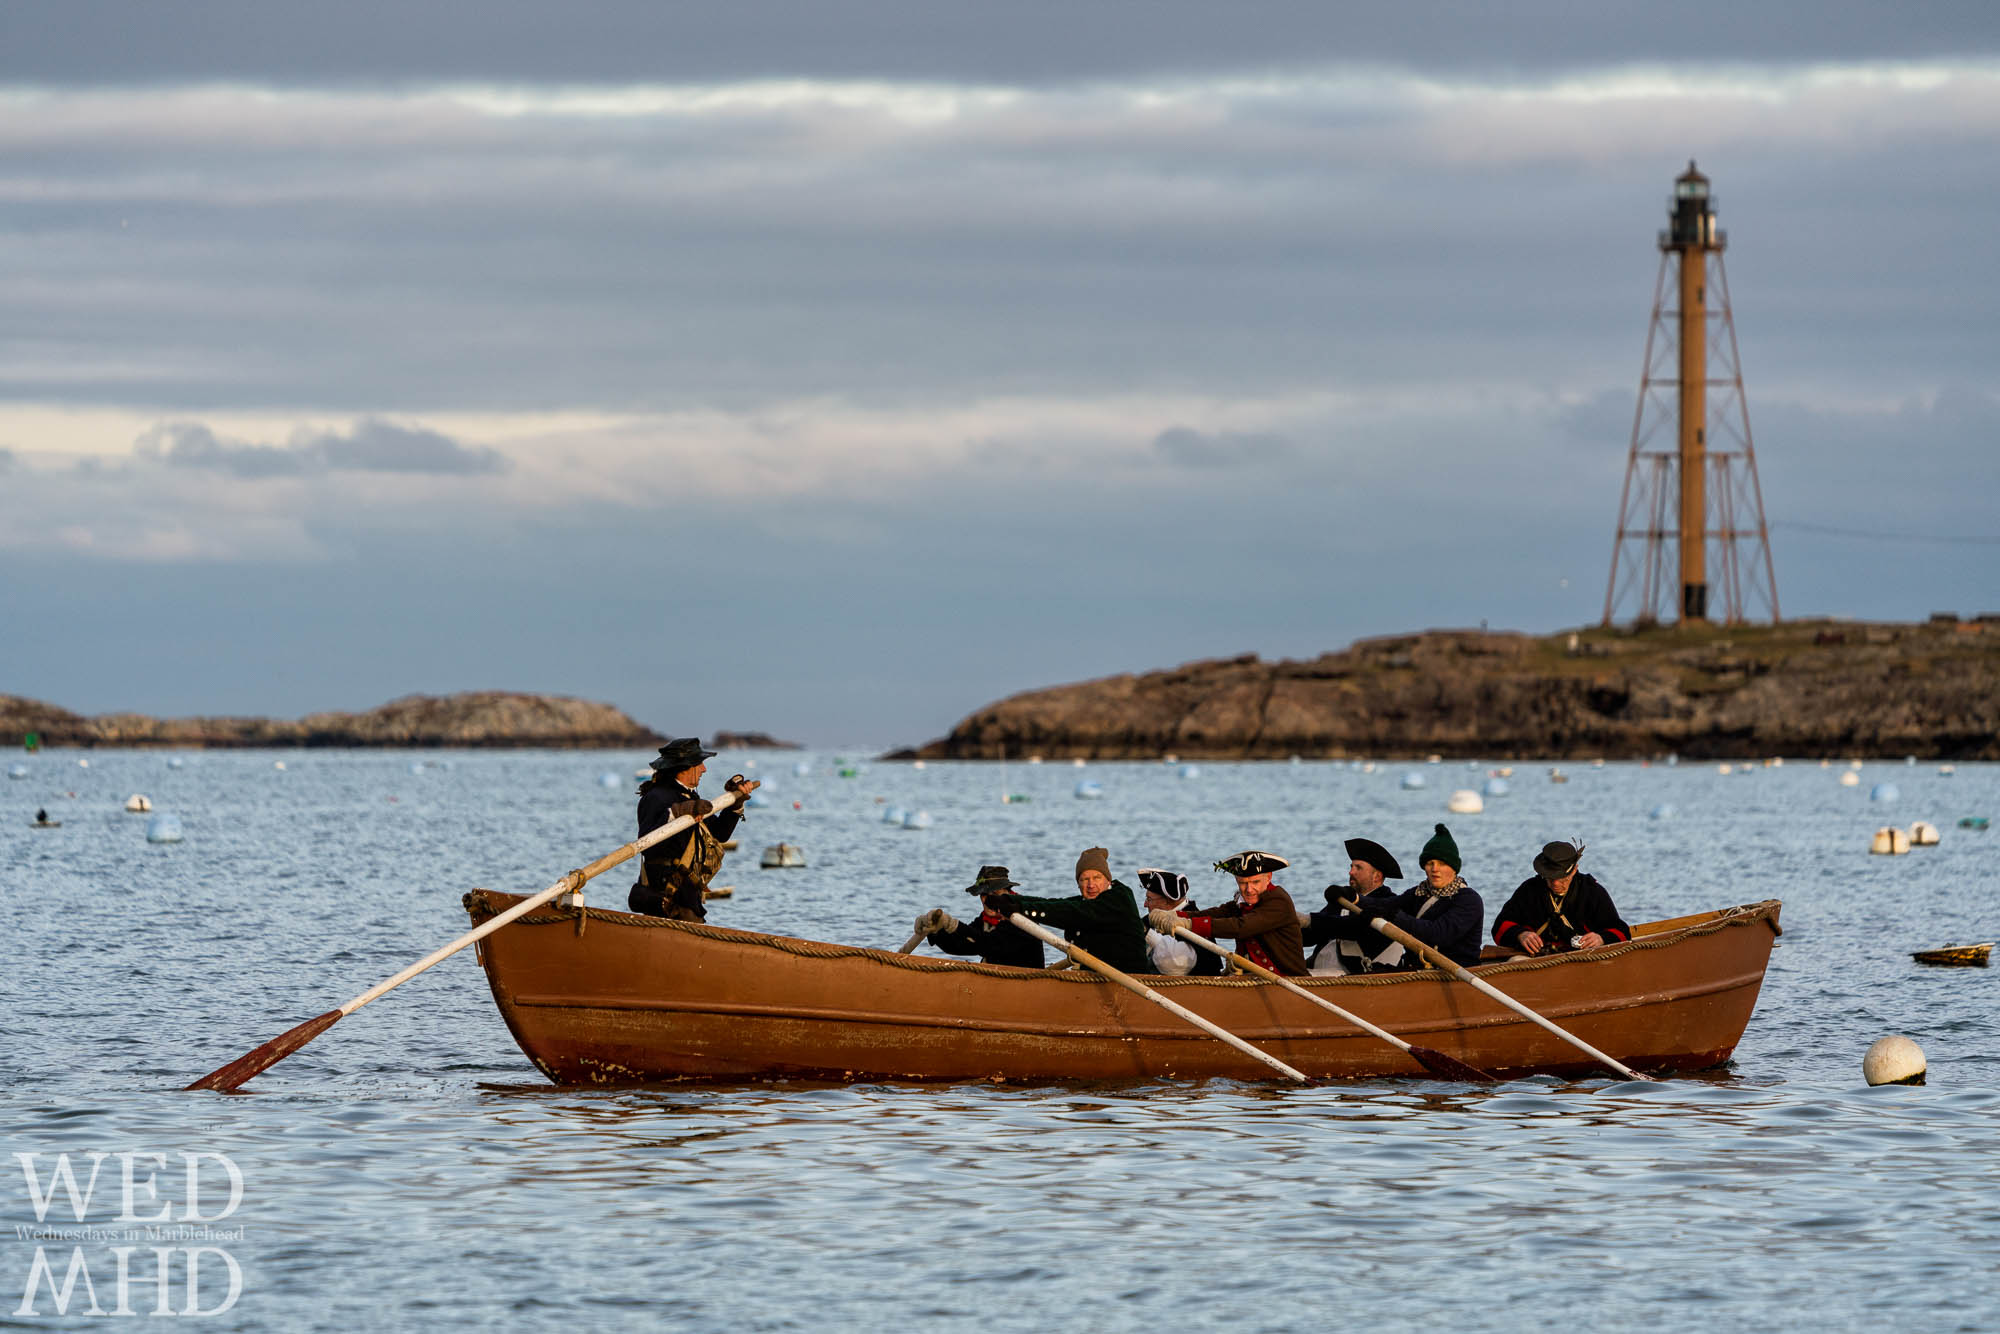 Glover's Regiment recalls simpler days by rowing across an empty harbor in the time before masks and social distancing